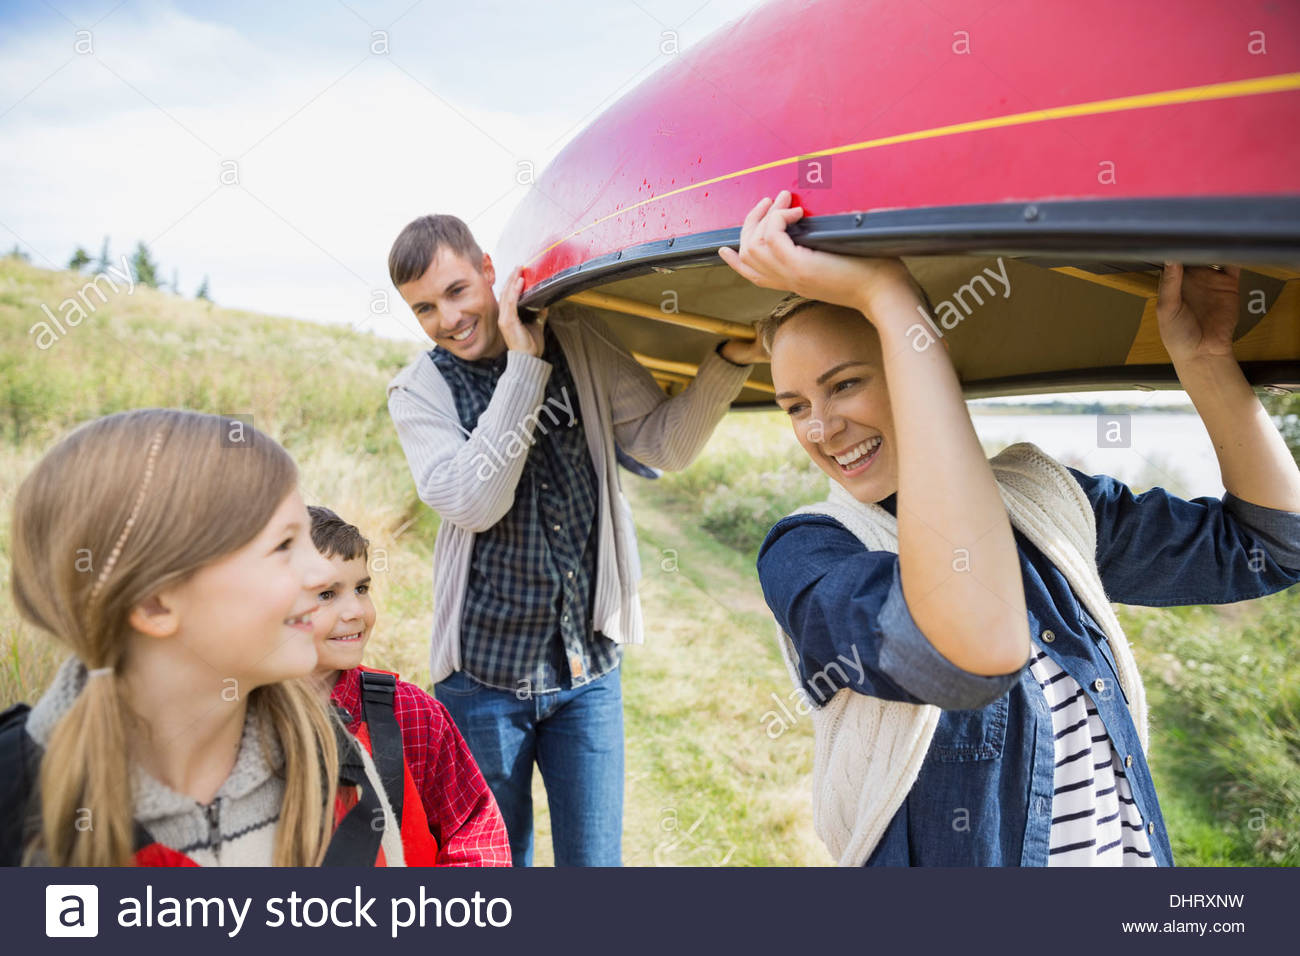 Family carrying canoe to lakeshore - Stock Image